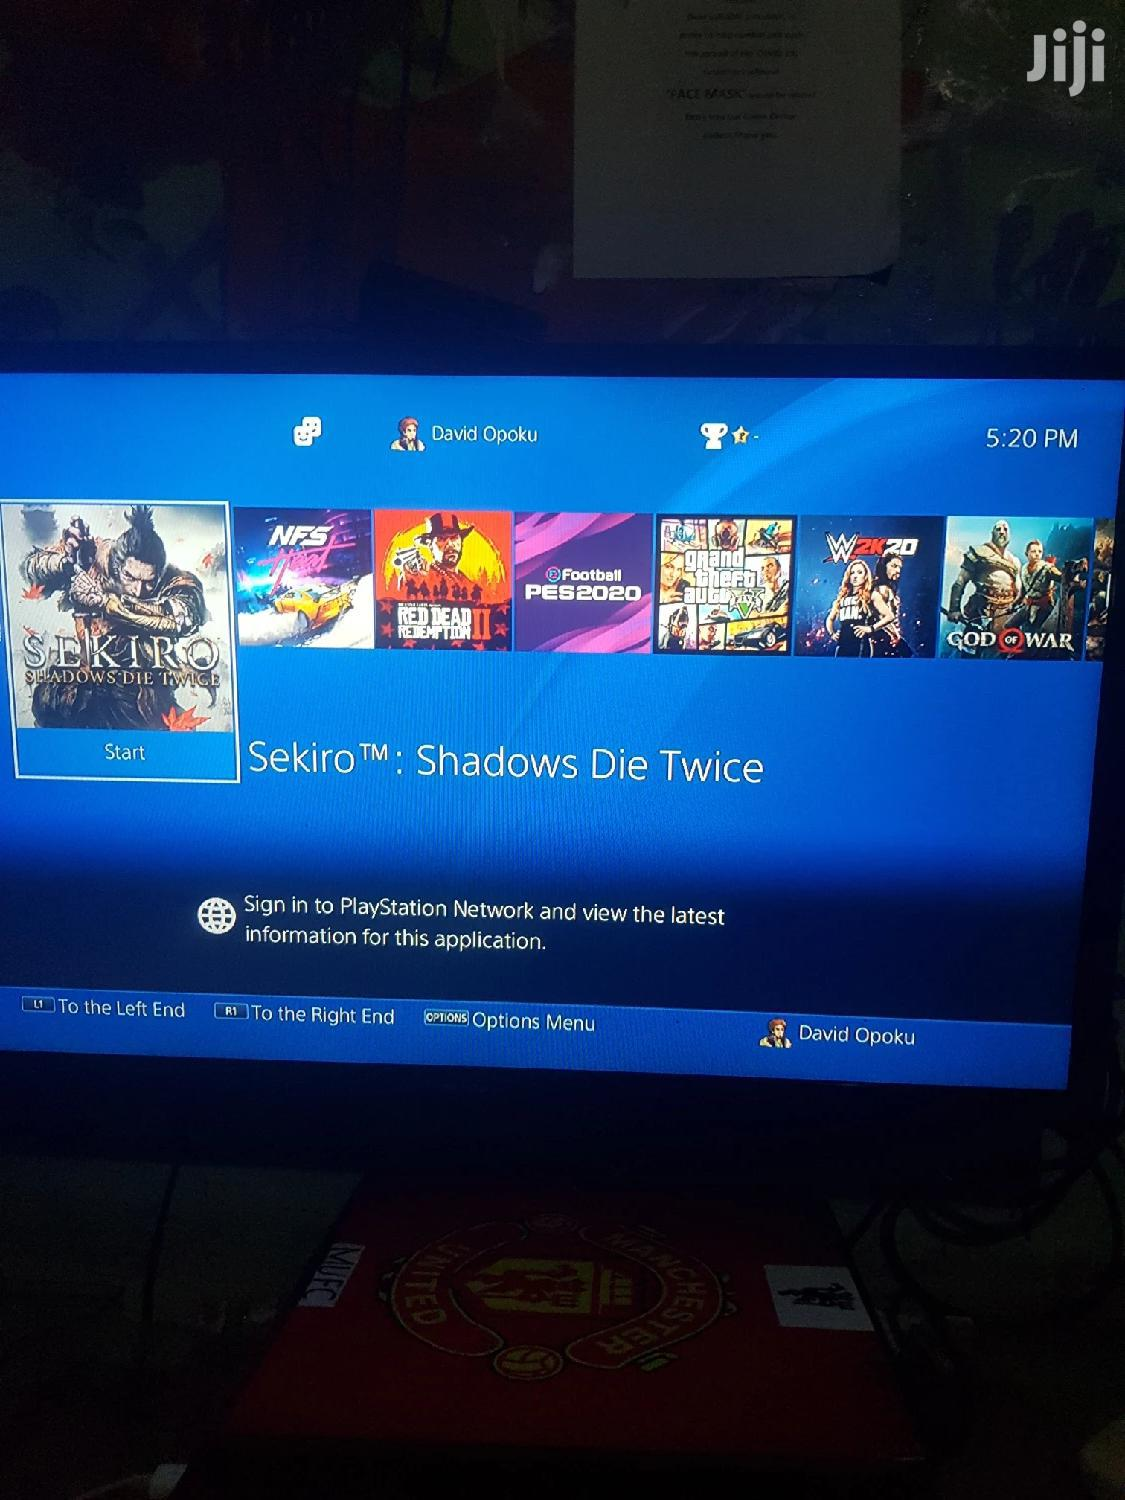 Archive: Loading Of Ps4 Games